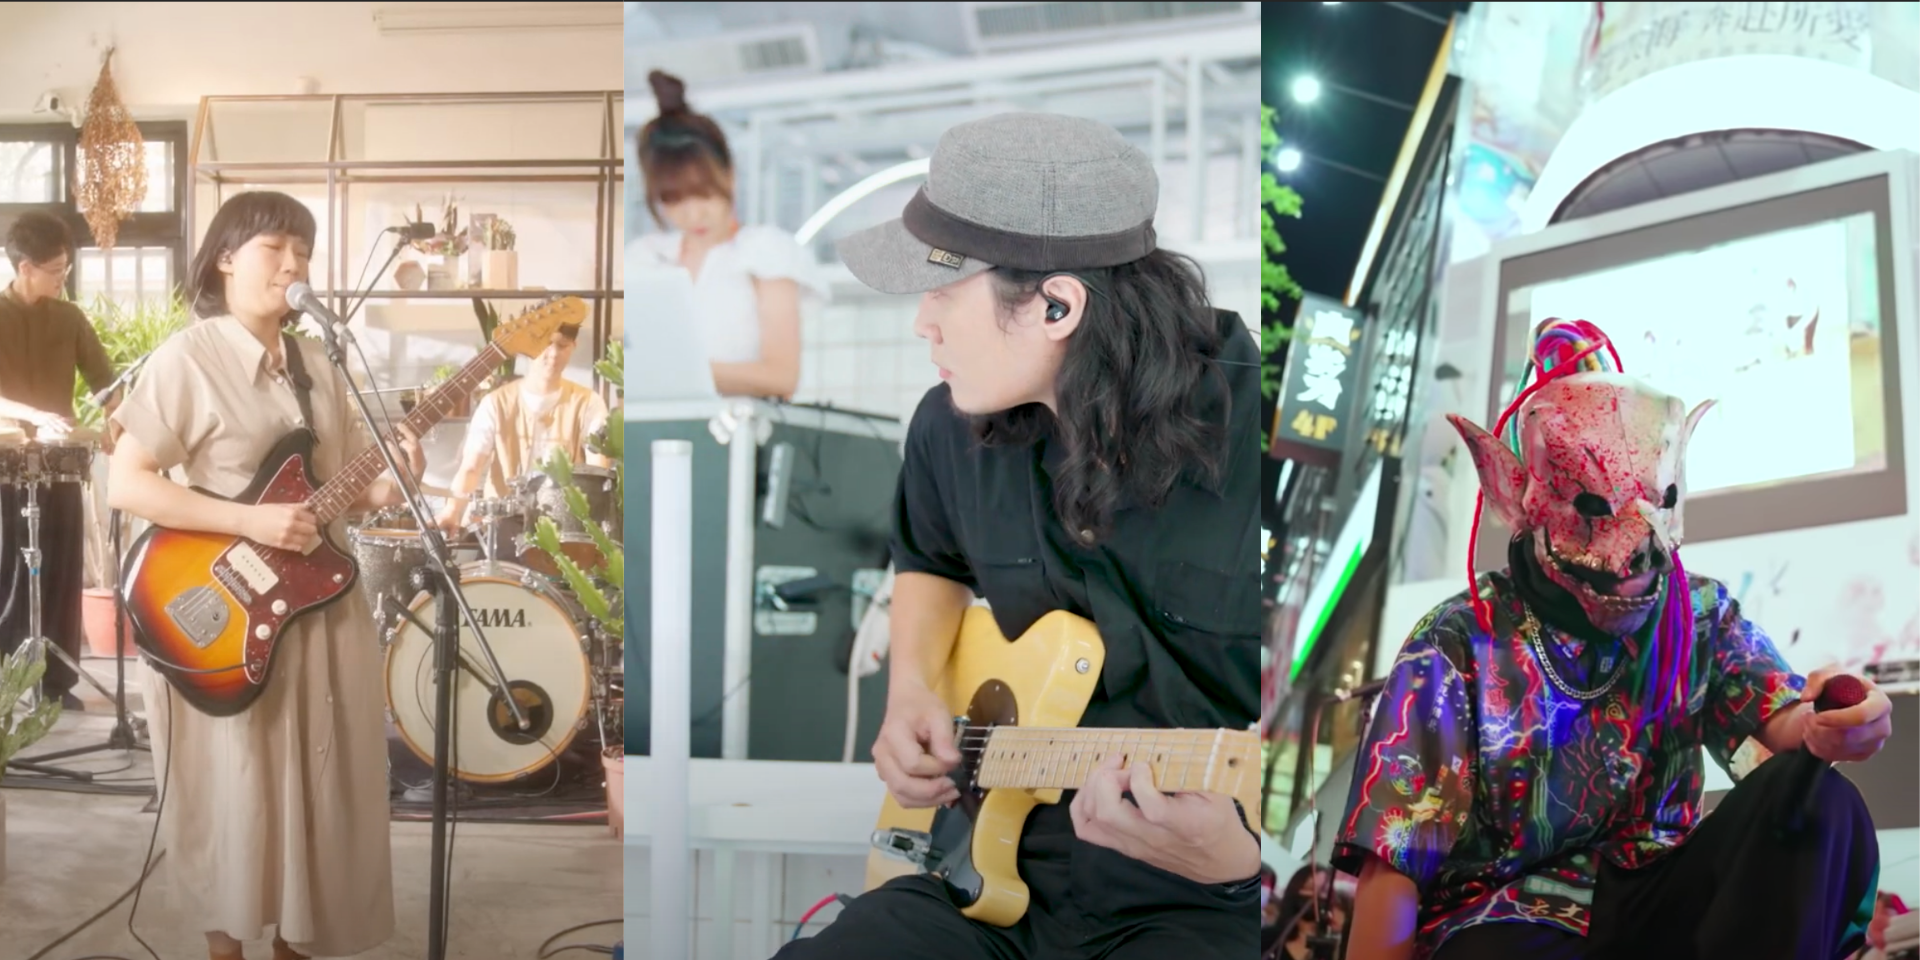 Go on a Taipei music trip with Huan Huan, Go Go Machine Orchestra, and Flesh Juicer — watch